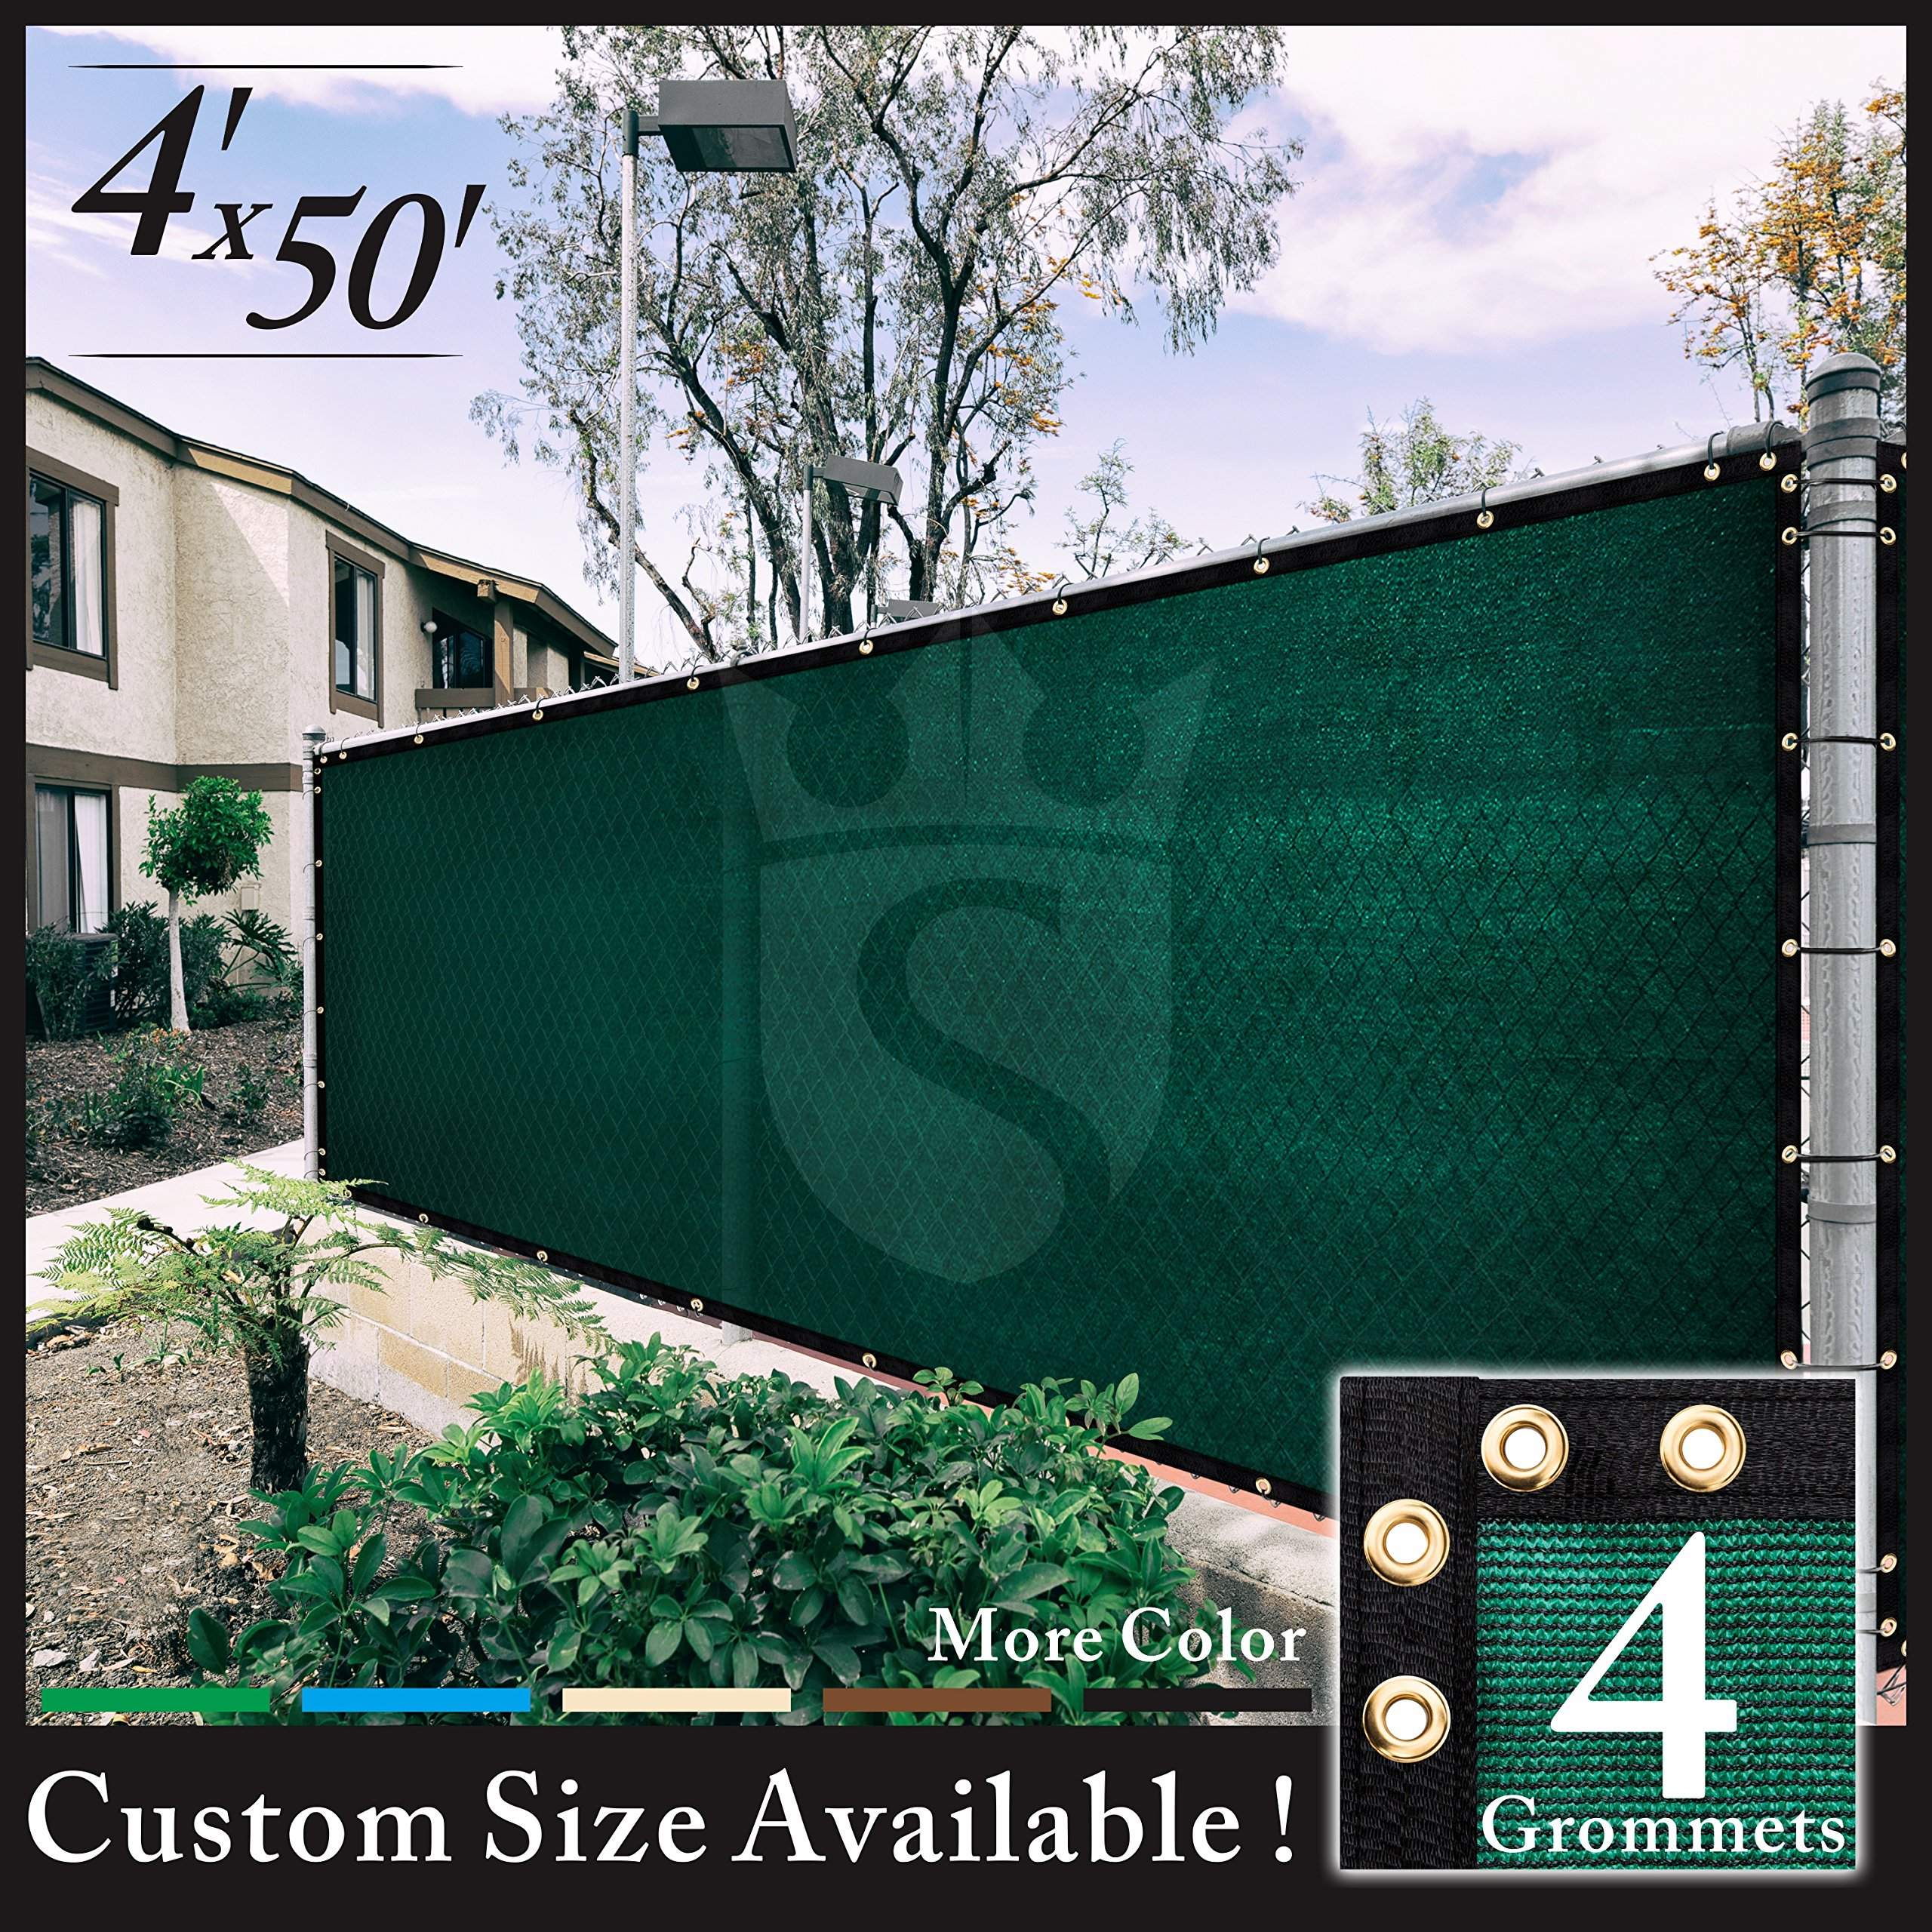 Royal Shade 6x50 Green Fence Screen Windscreen Cover Netting Mesh Fabric C loth - Get Your Privacy Today, Stop Neighbor Seeing-Through, 6' x 50